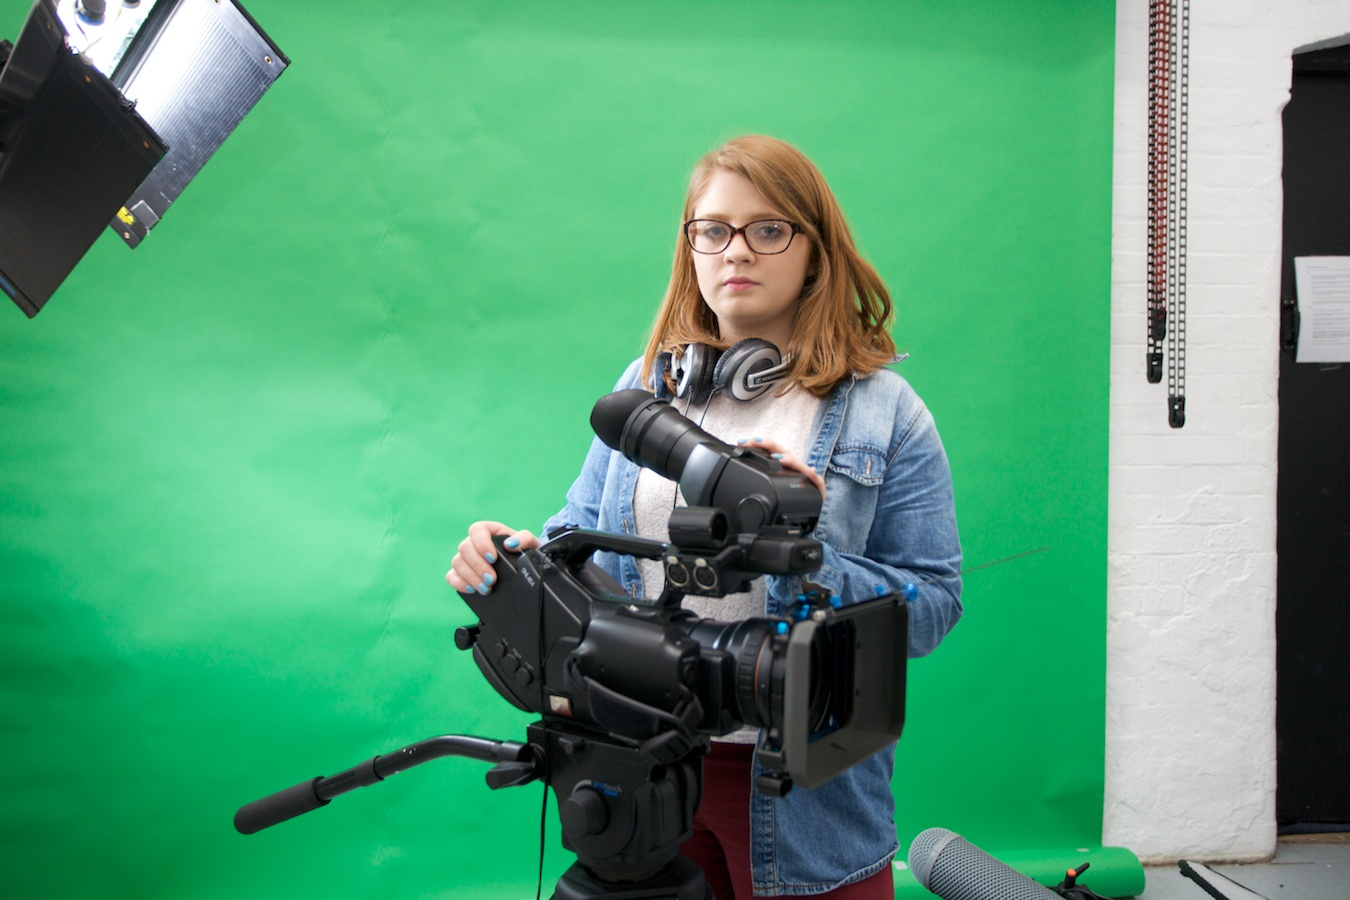 Student Filming in digital media faculty griffith College